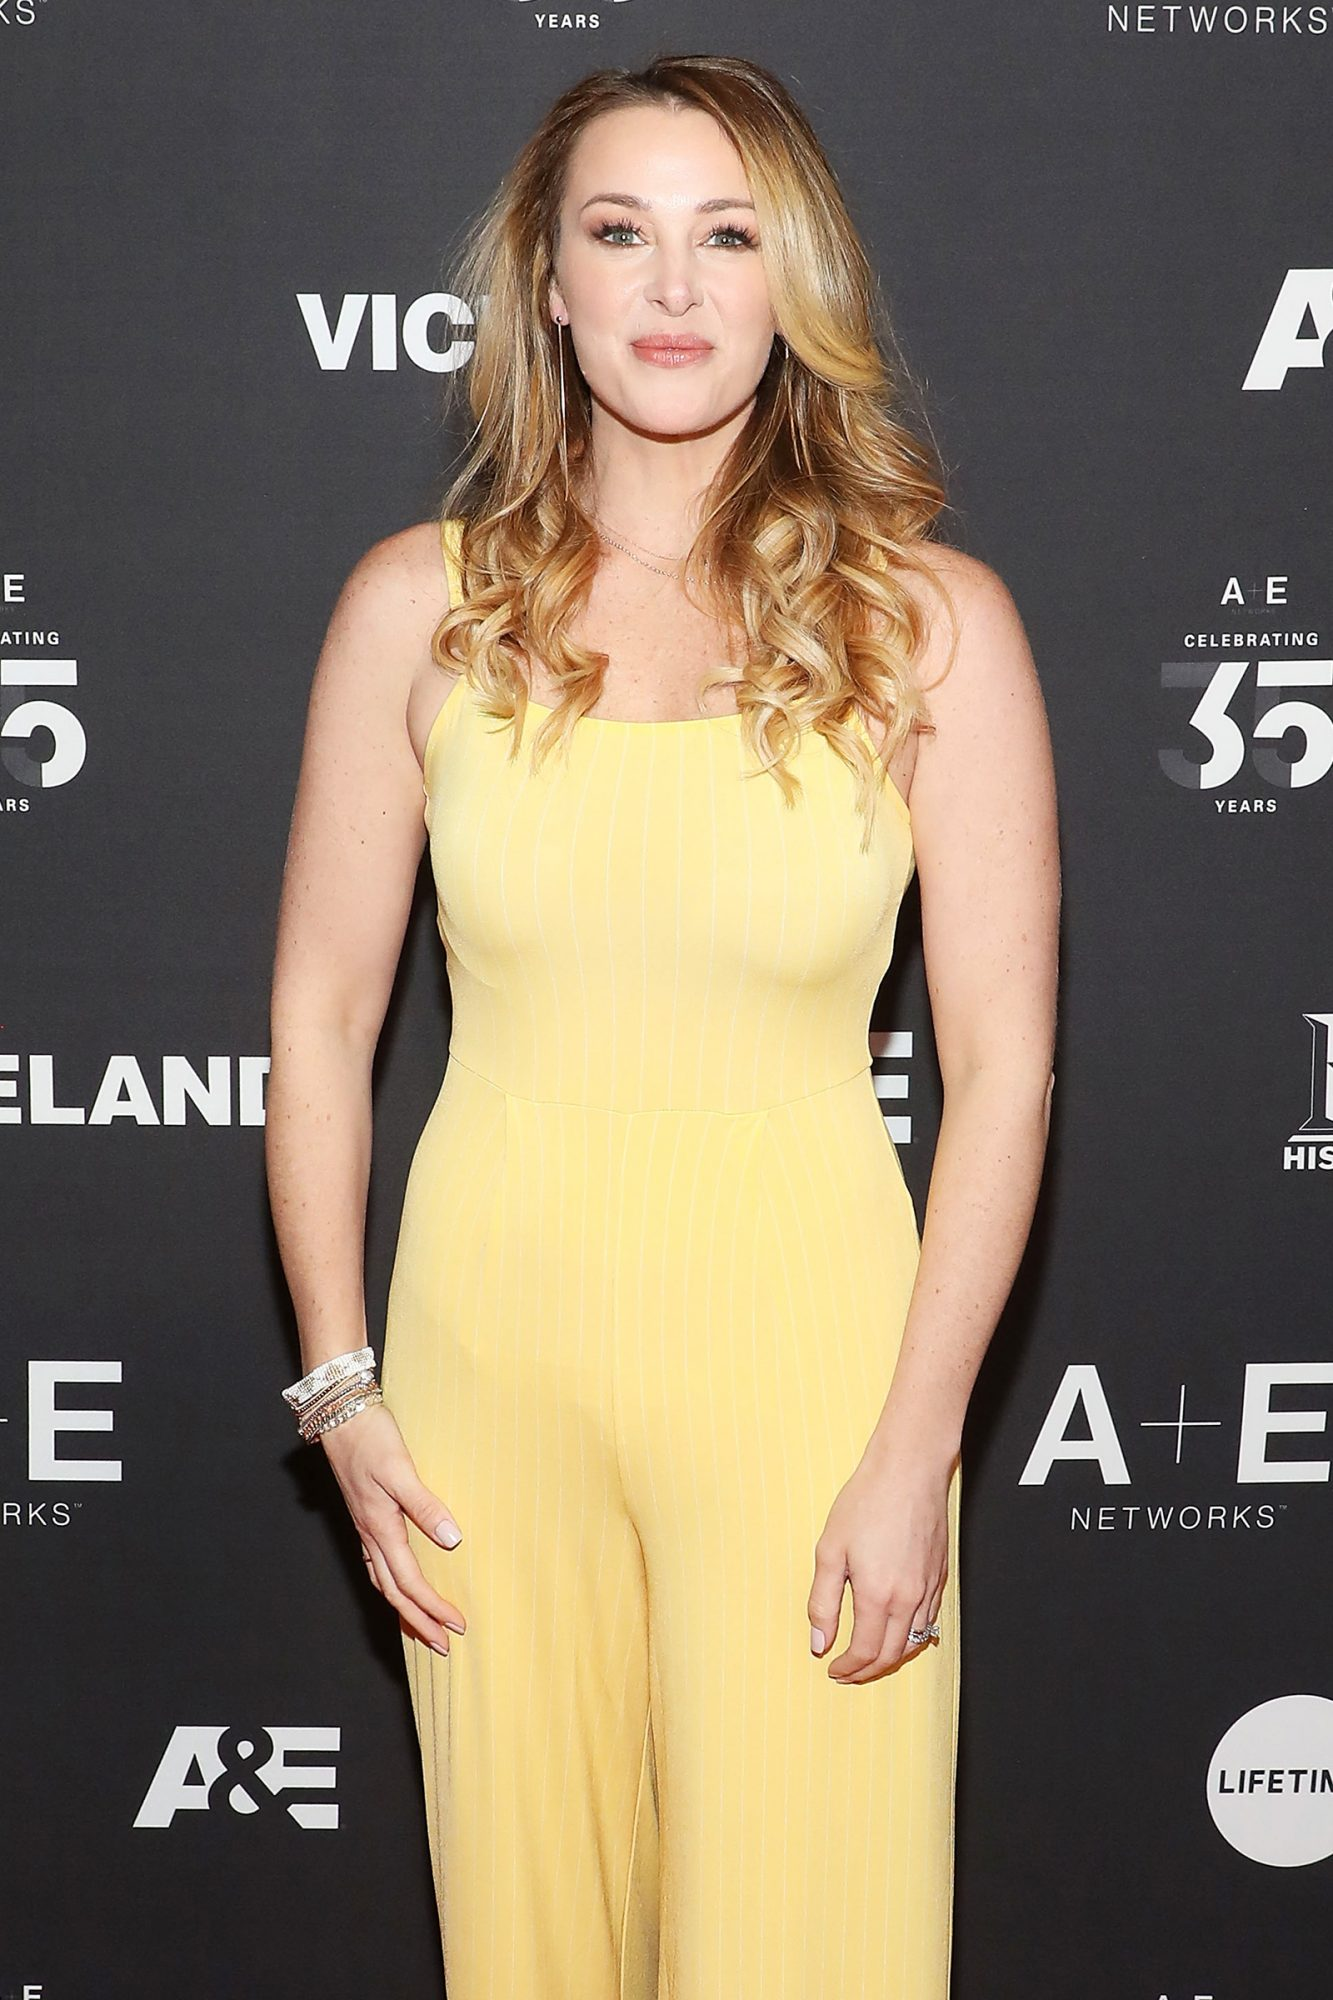 Jamie Otis attends the 2019 A+E Upfront at Jazz at Lincoln Center on March 27, 2019 in New York City